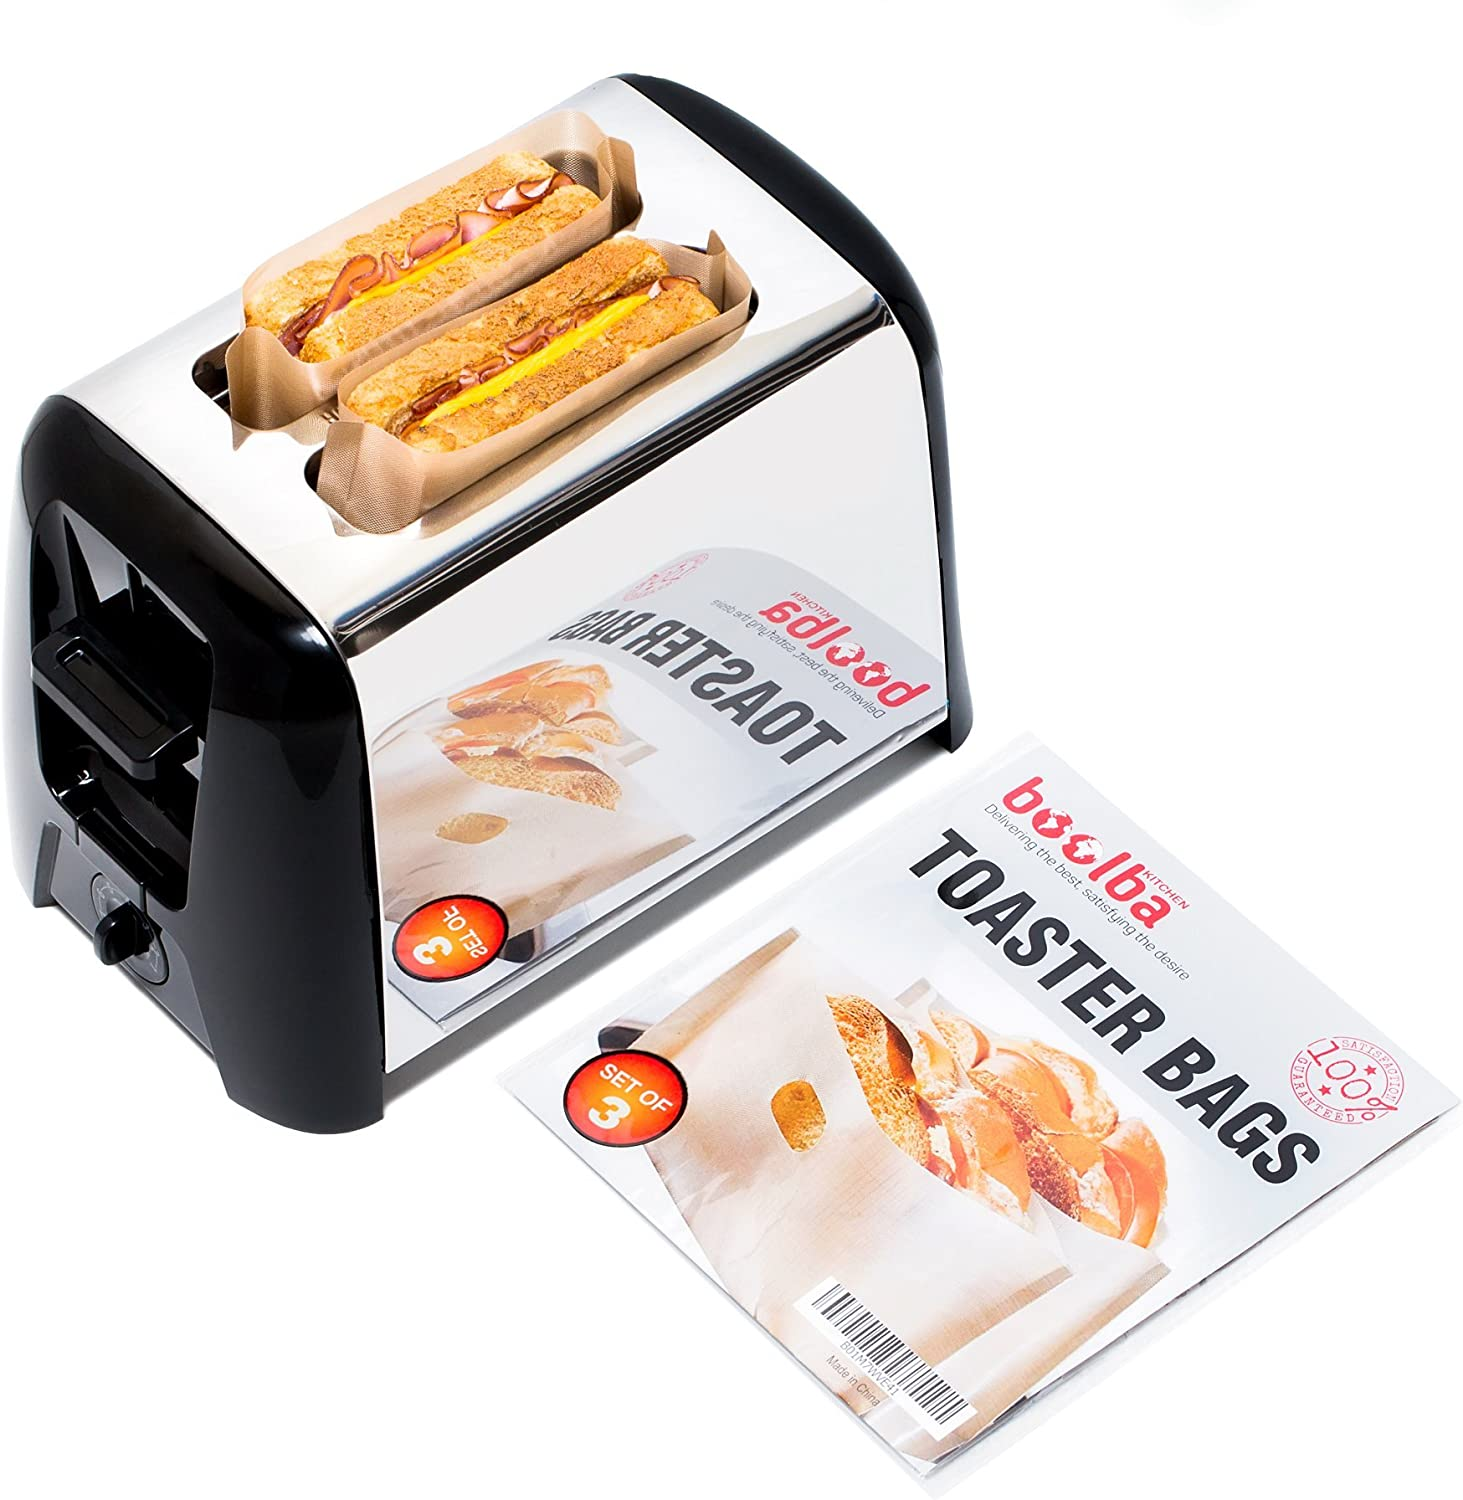 Toaster Bags (set of 3)   Grilled Cheese Made Easy   Non Stick Reusable Easy to Clean   Perfect For Sandwiches Hot Dogs Chicken Fish Vegetables Panini & Garlic Toast